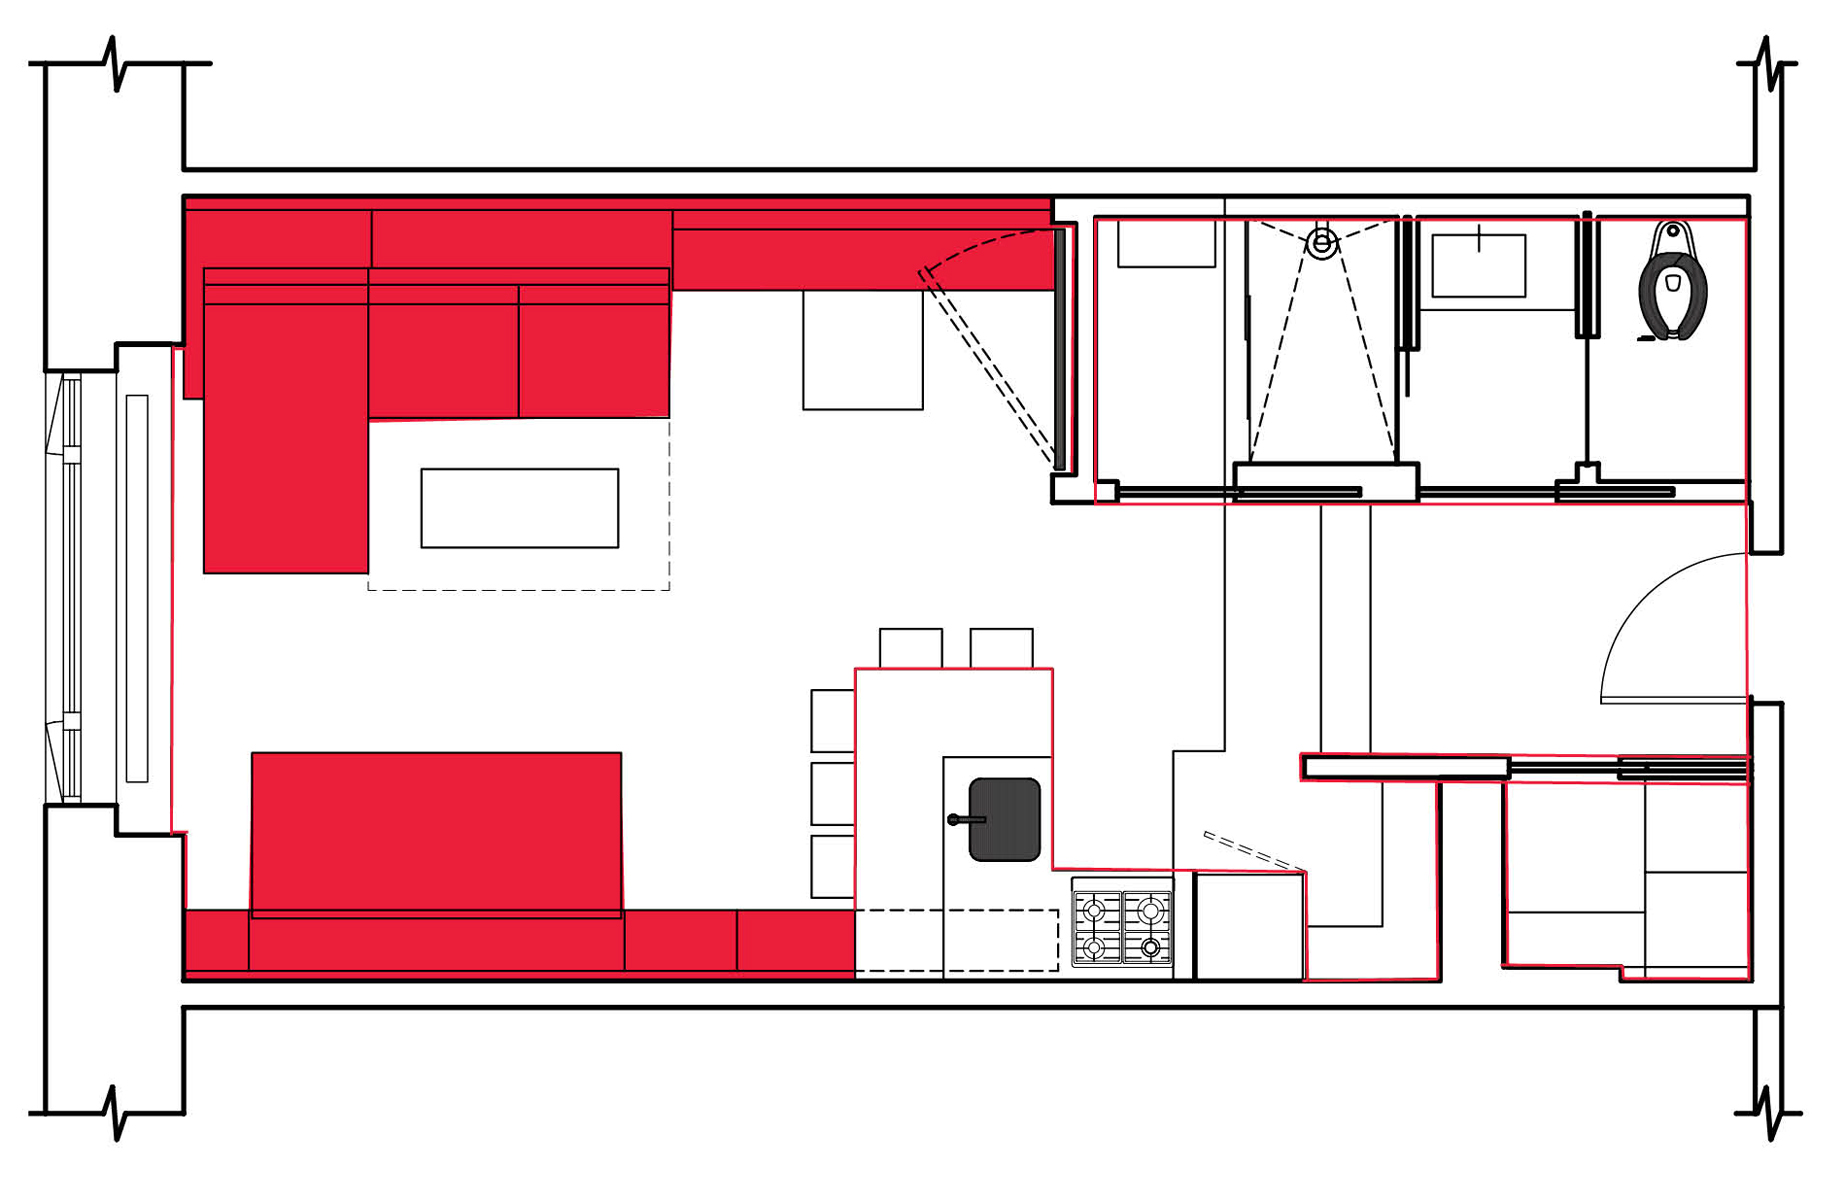 Before and after plans to maximise living space in a small New York City apartment